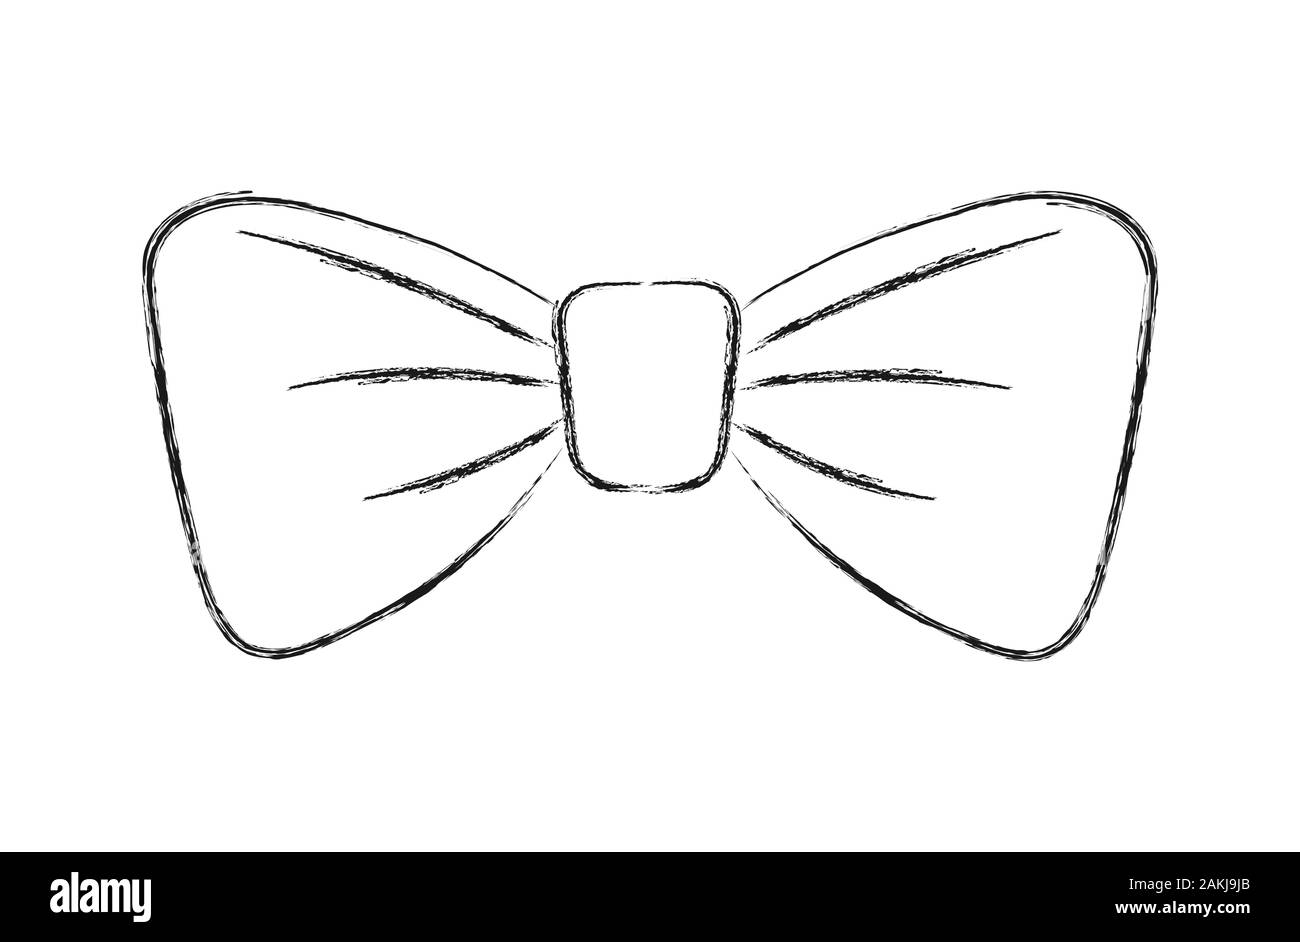 Pencil Sketch Of A Bow Tie In The Style Of Doodle Isolated On White Background For Greeting Cards Posters Stickers And Seasonal Design Isolated O Stock Vector Image Art Alamy